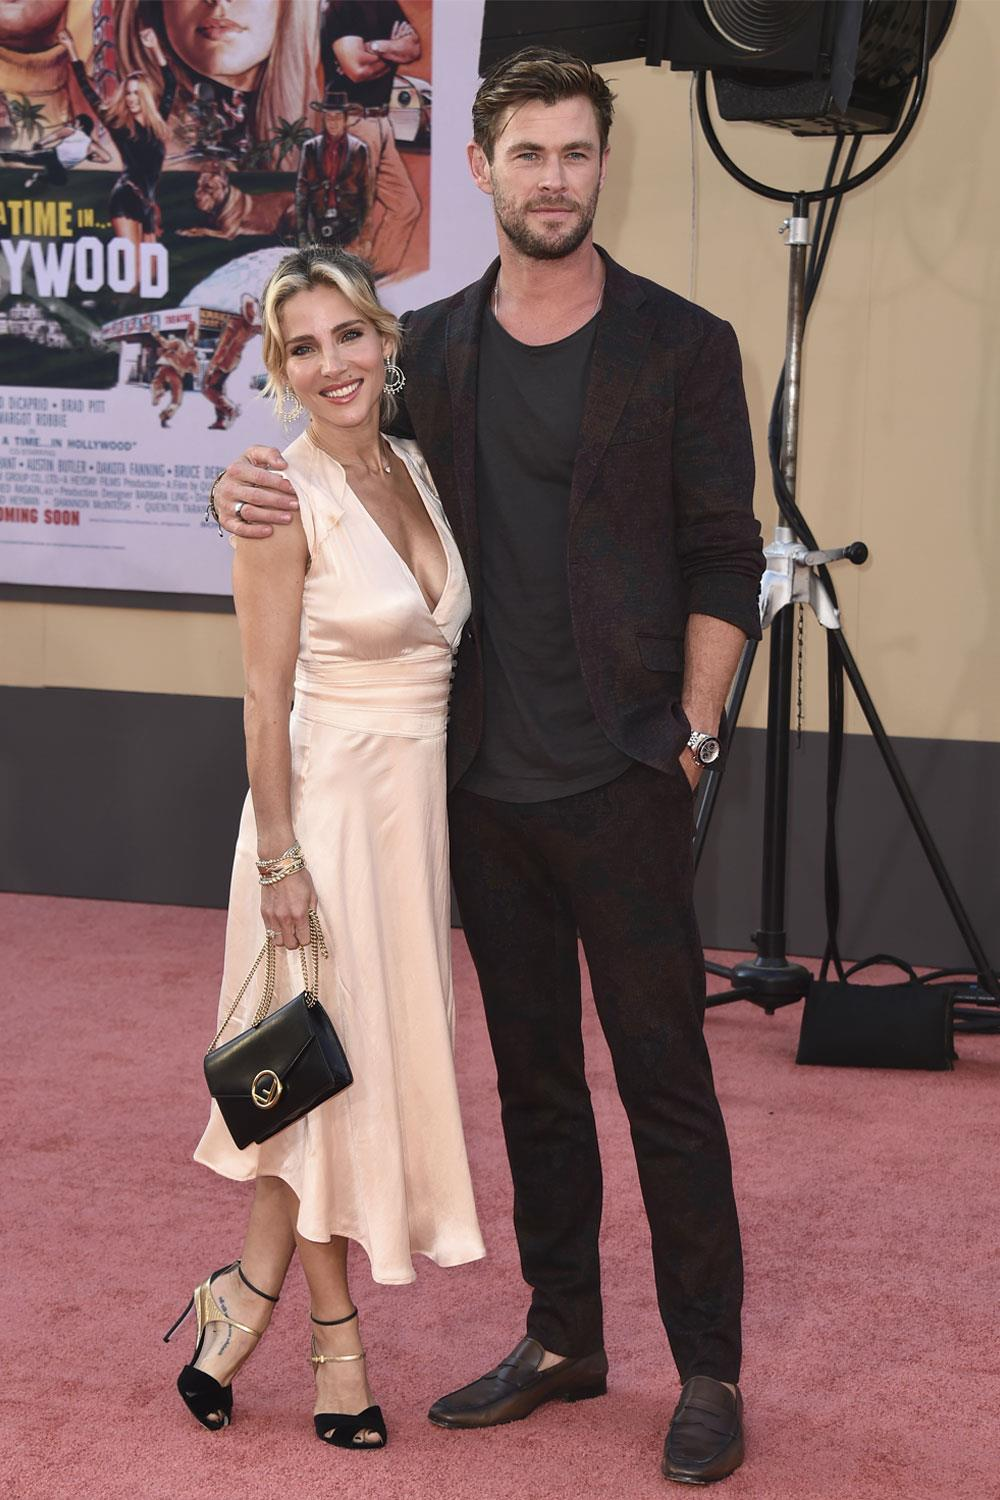 estreno érase una vez en hollywood Elsa Pataky Chris Hemsworth